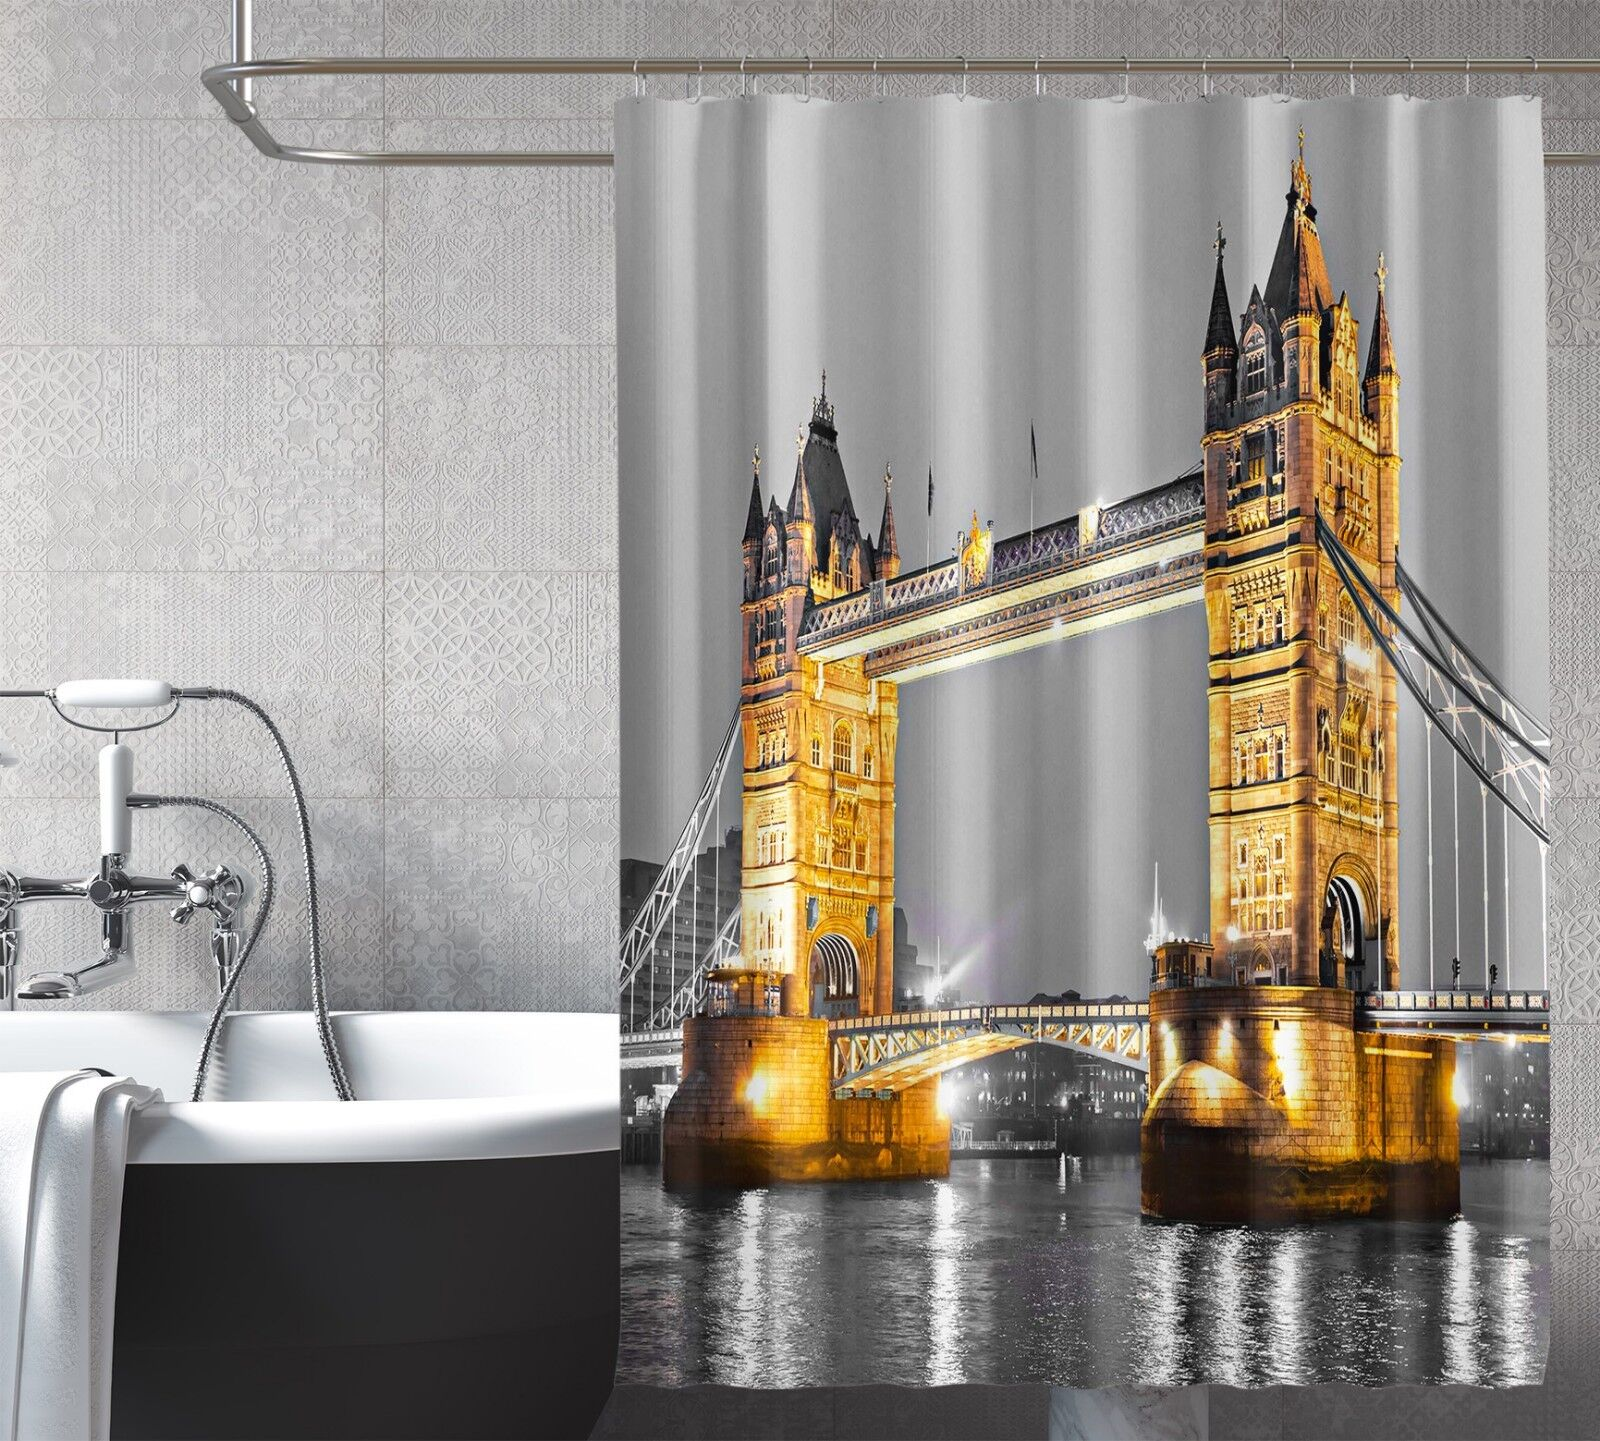 3D London Bridge 77 Shower Curtain Waterproof Fiber Bathroom Home Windows Toilet